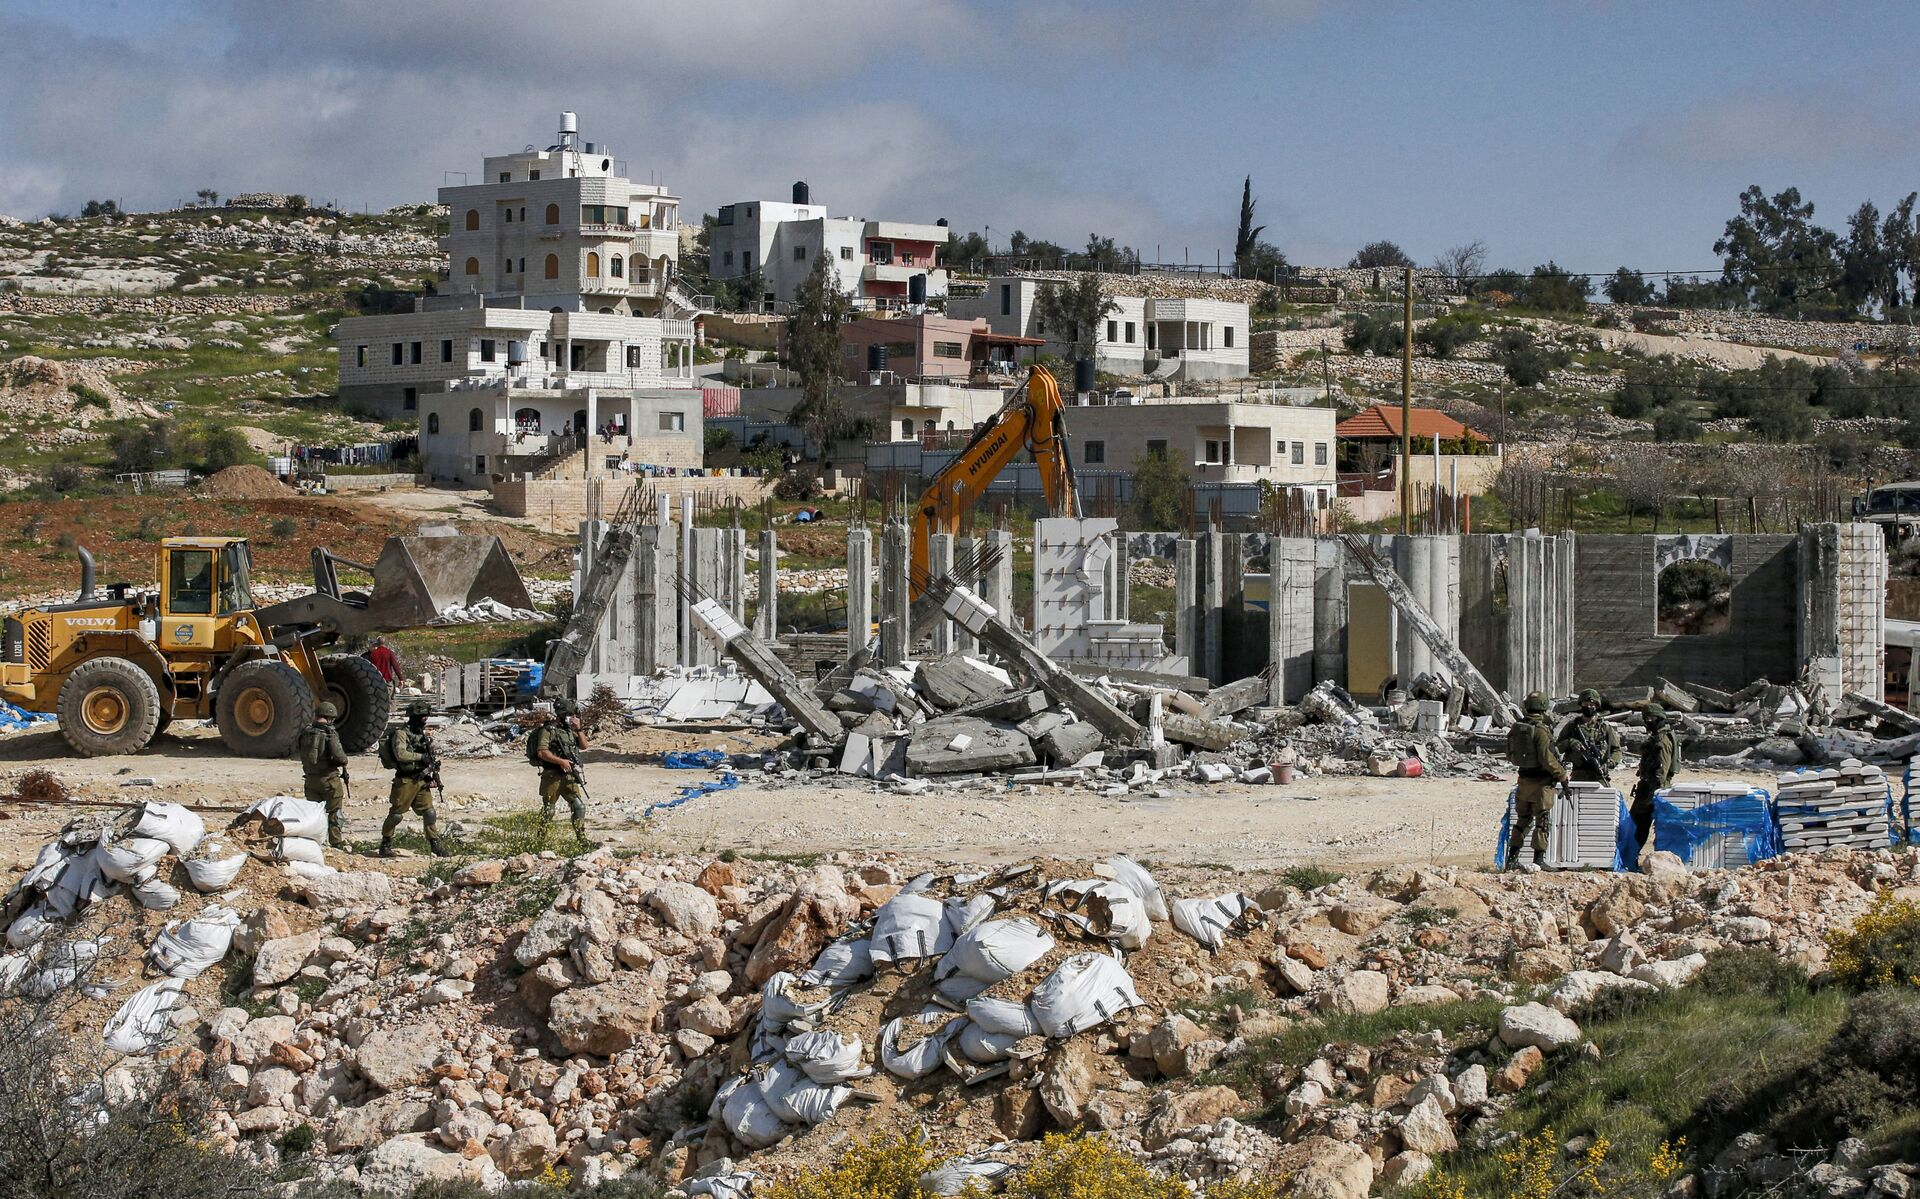 Israeli soldiers stand by as excavators demolish a Palestinian house (still under construction) located within the area C (where Israel retains full control over planning and construction) southeast of Hebron in the occupied West Bank on March 8, 2021. - Sputnik International, 1920, 07.09.2021